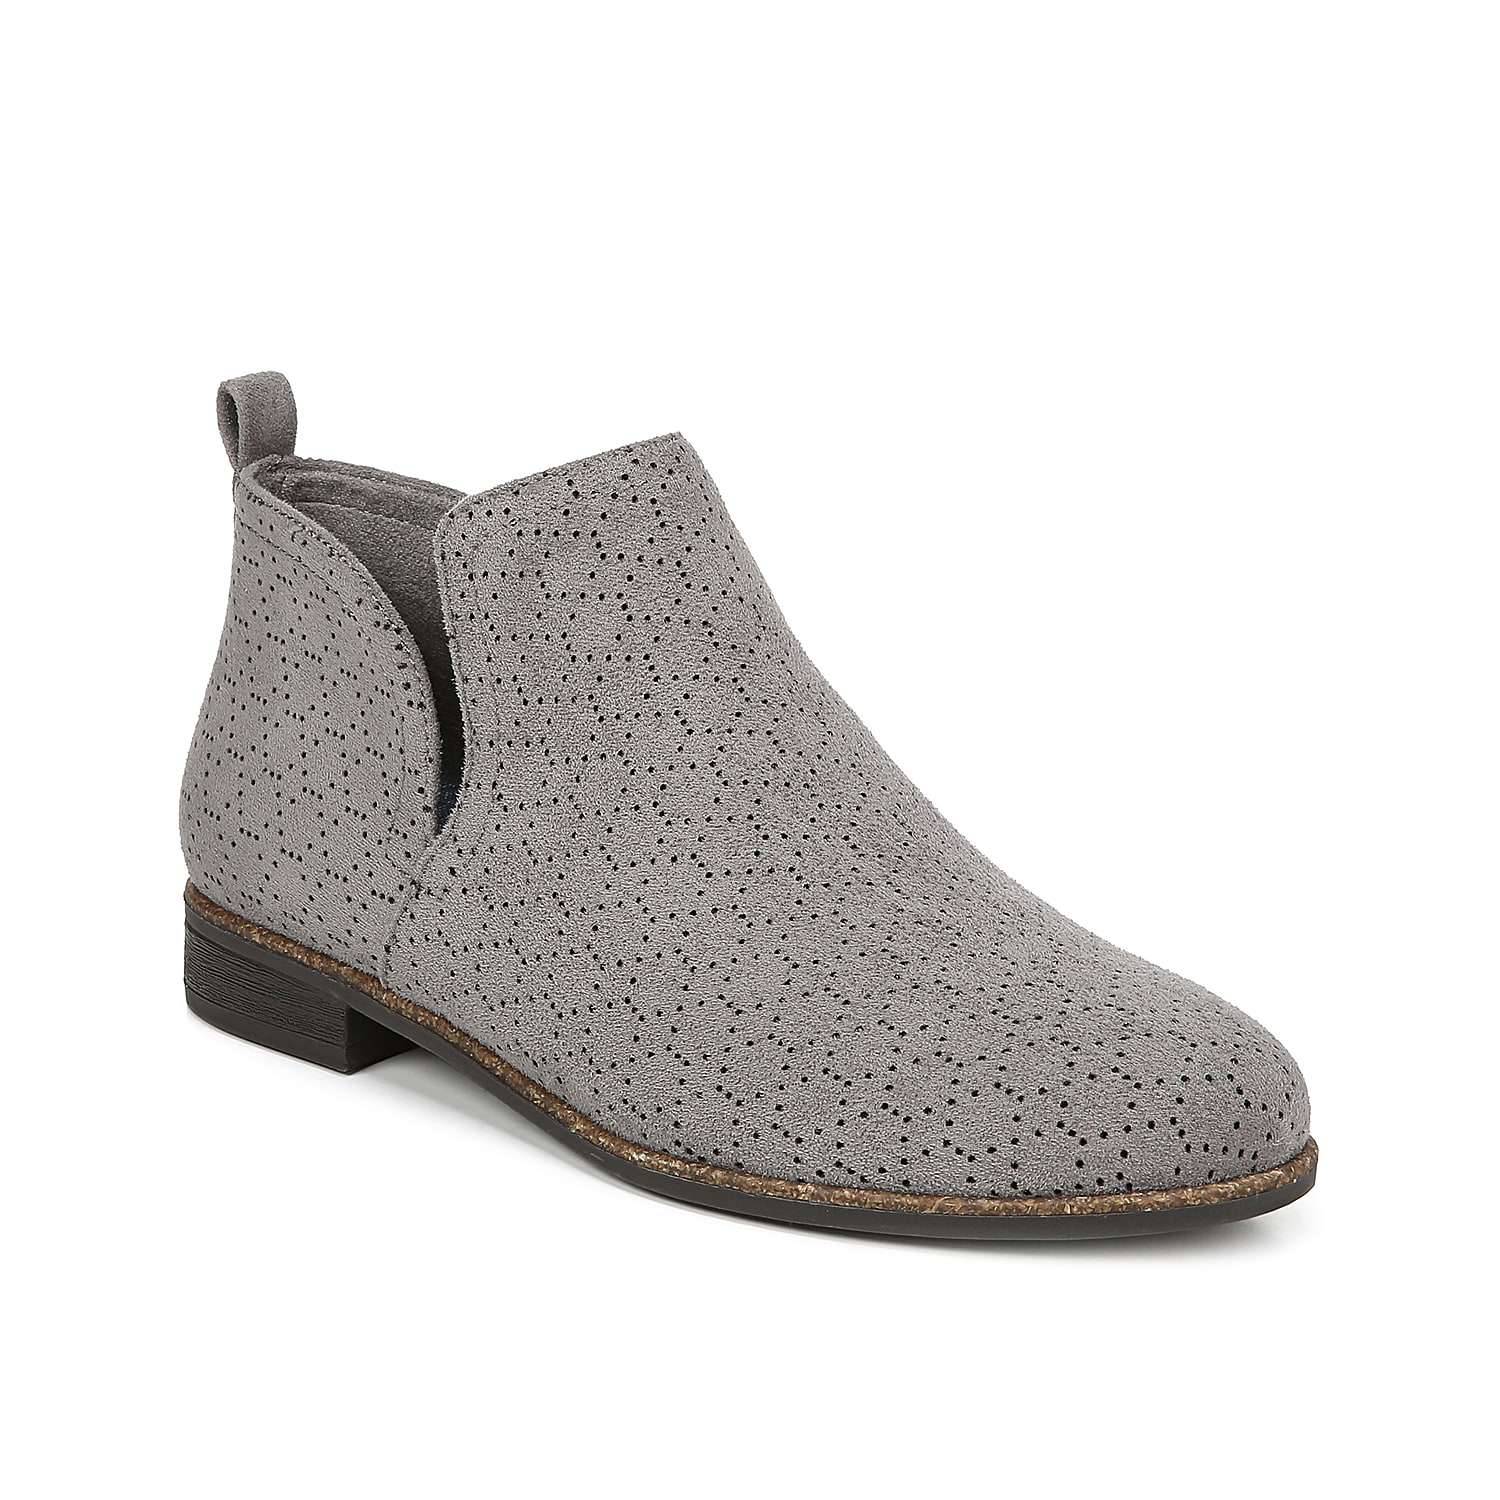 The Rate boot from Dr. Scholl\\\'s will be the perfect finishing touch to your cool-weather look. These ankle boots feature a modern perforated design and an asymmetrical topline for added style.